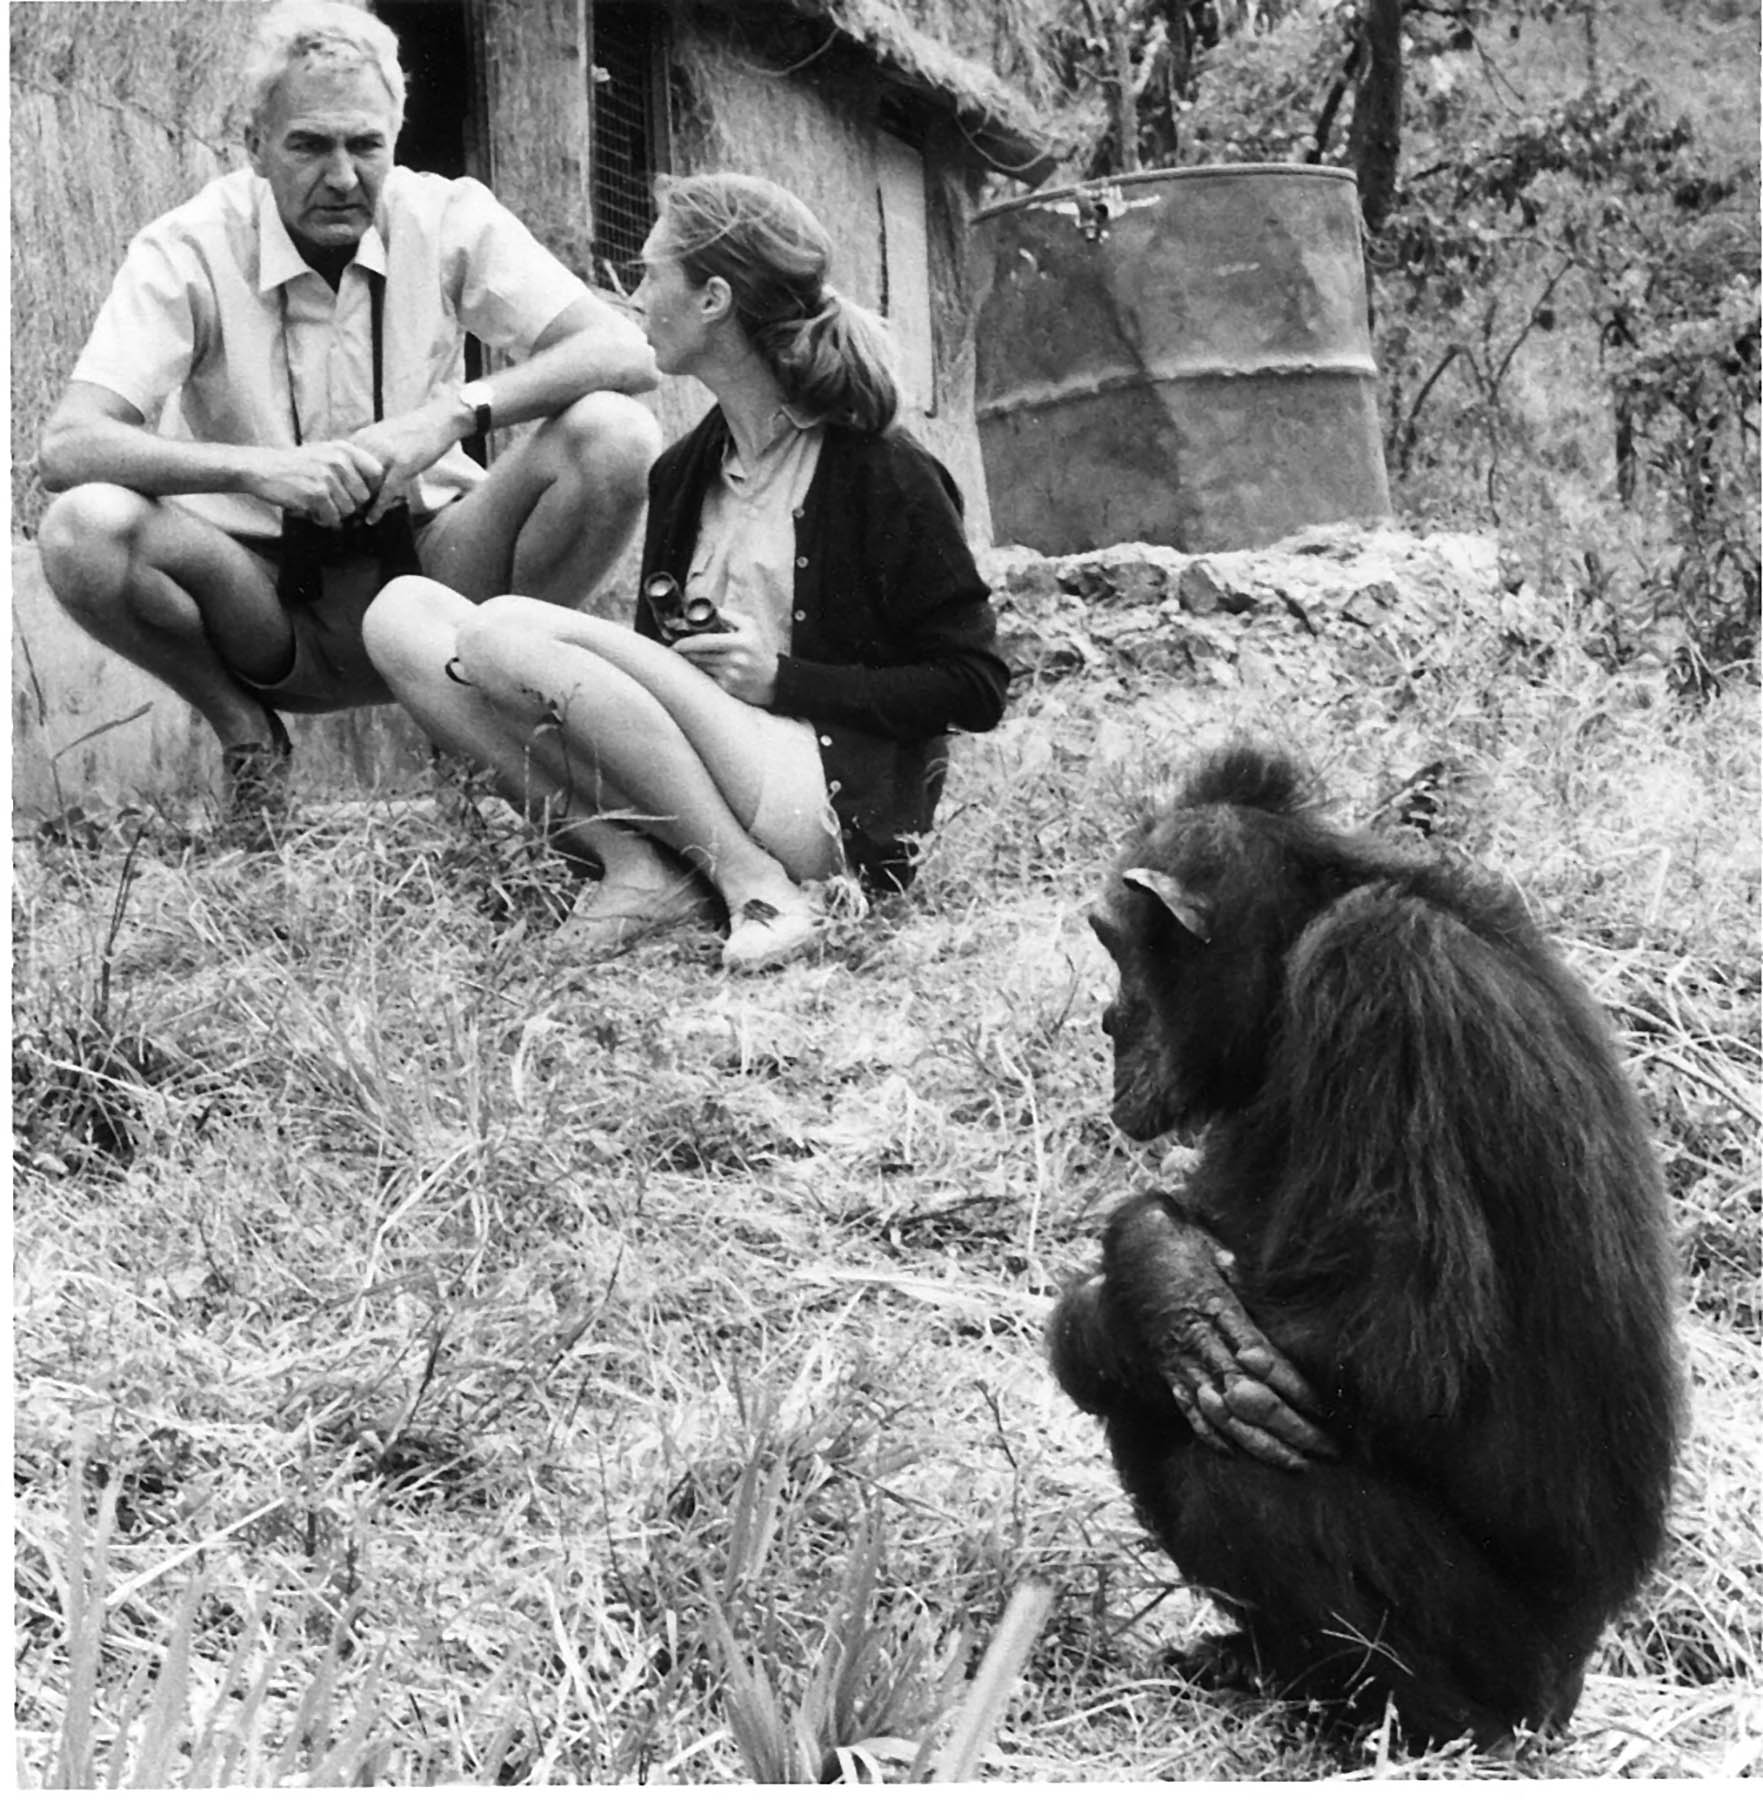 Robert Hinde, Jane Goodall, and Flo in Gombe Stream Wildlife Preserve.